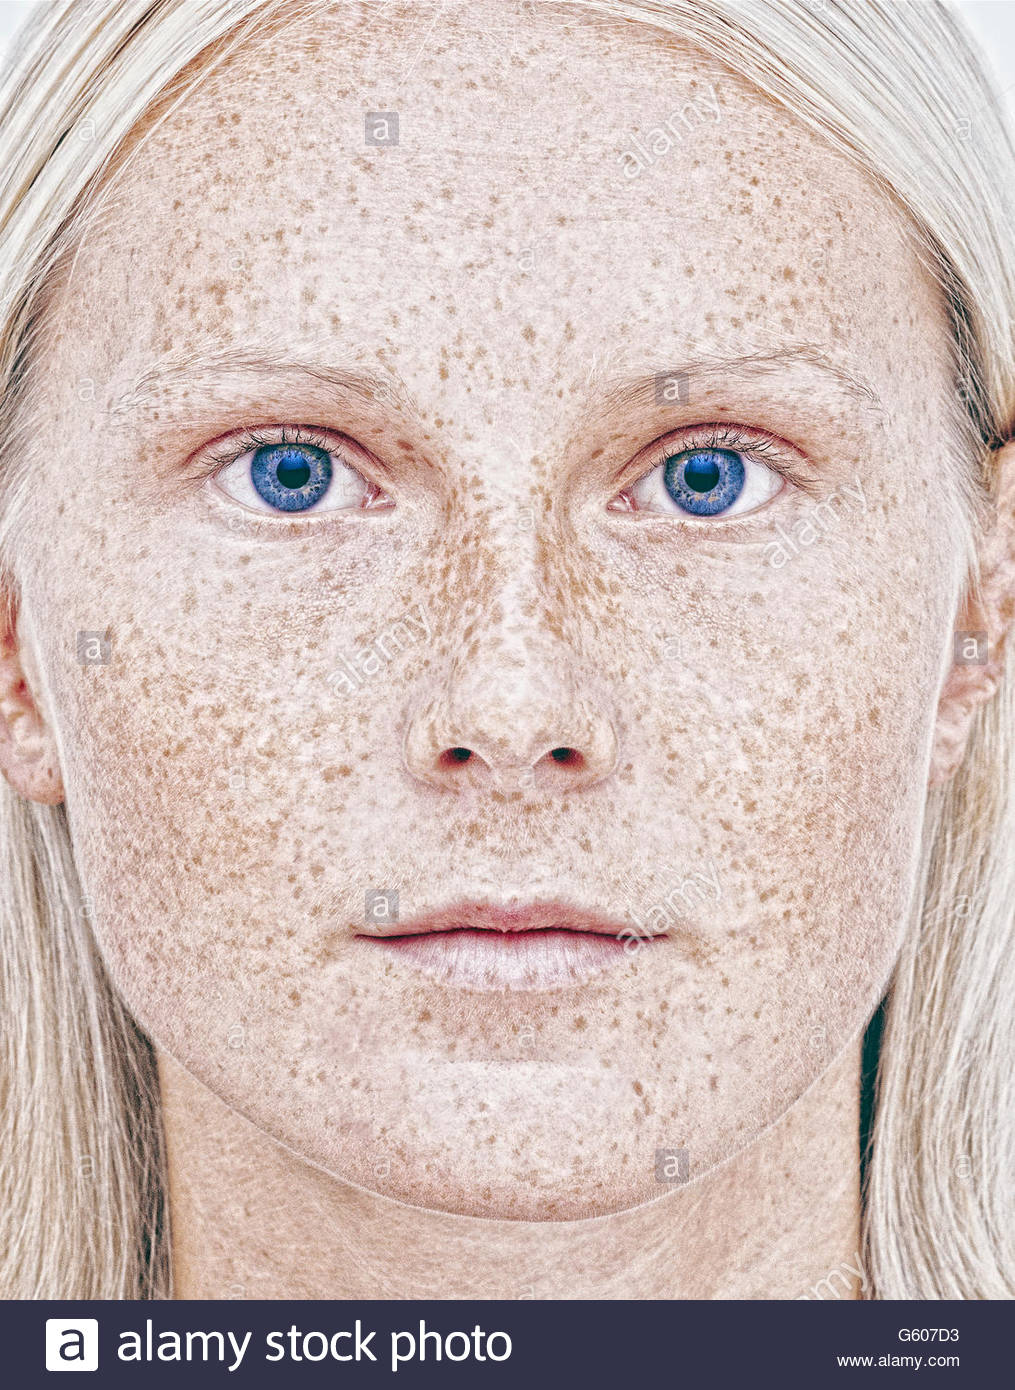 Portrait of young woman with freckled face - Stock Image